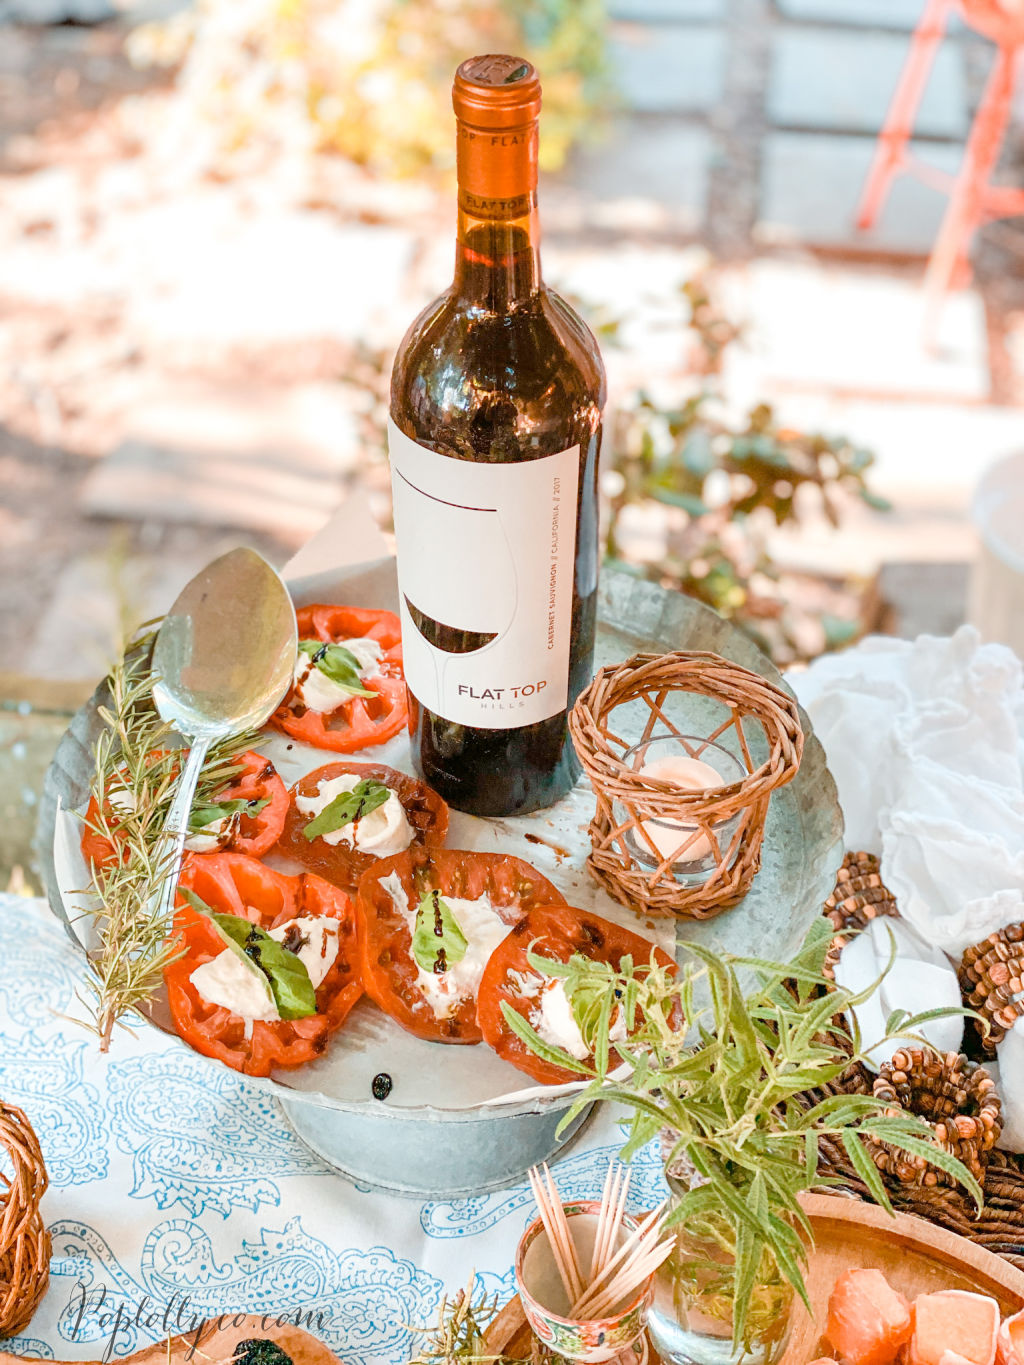 tomato caprese recipe | easy happy hour menu ideas | Flat Top Hills Wines | Poplolly co